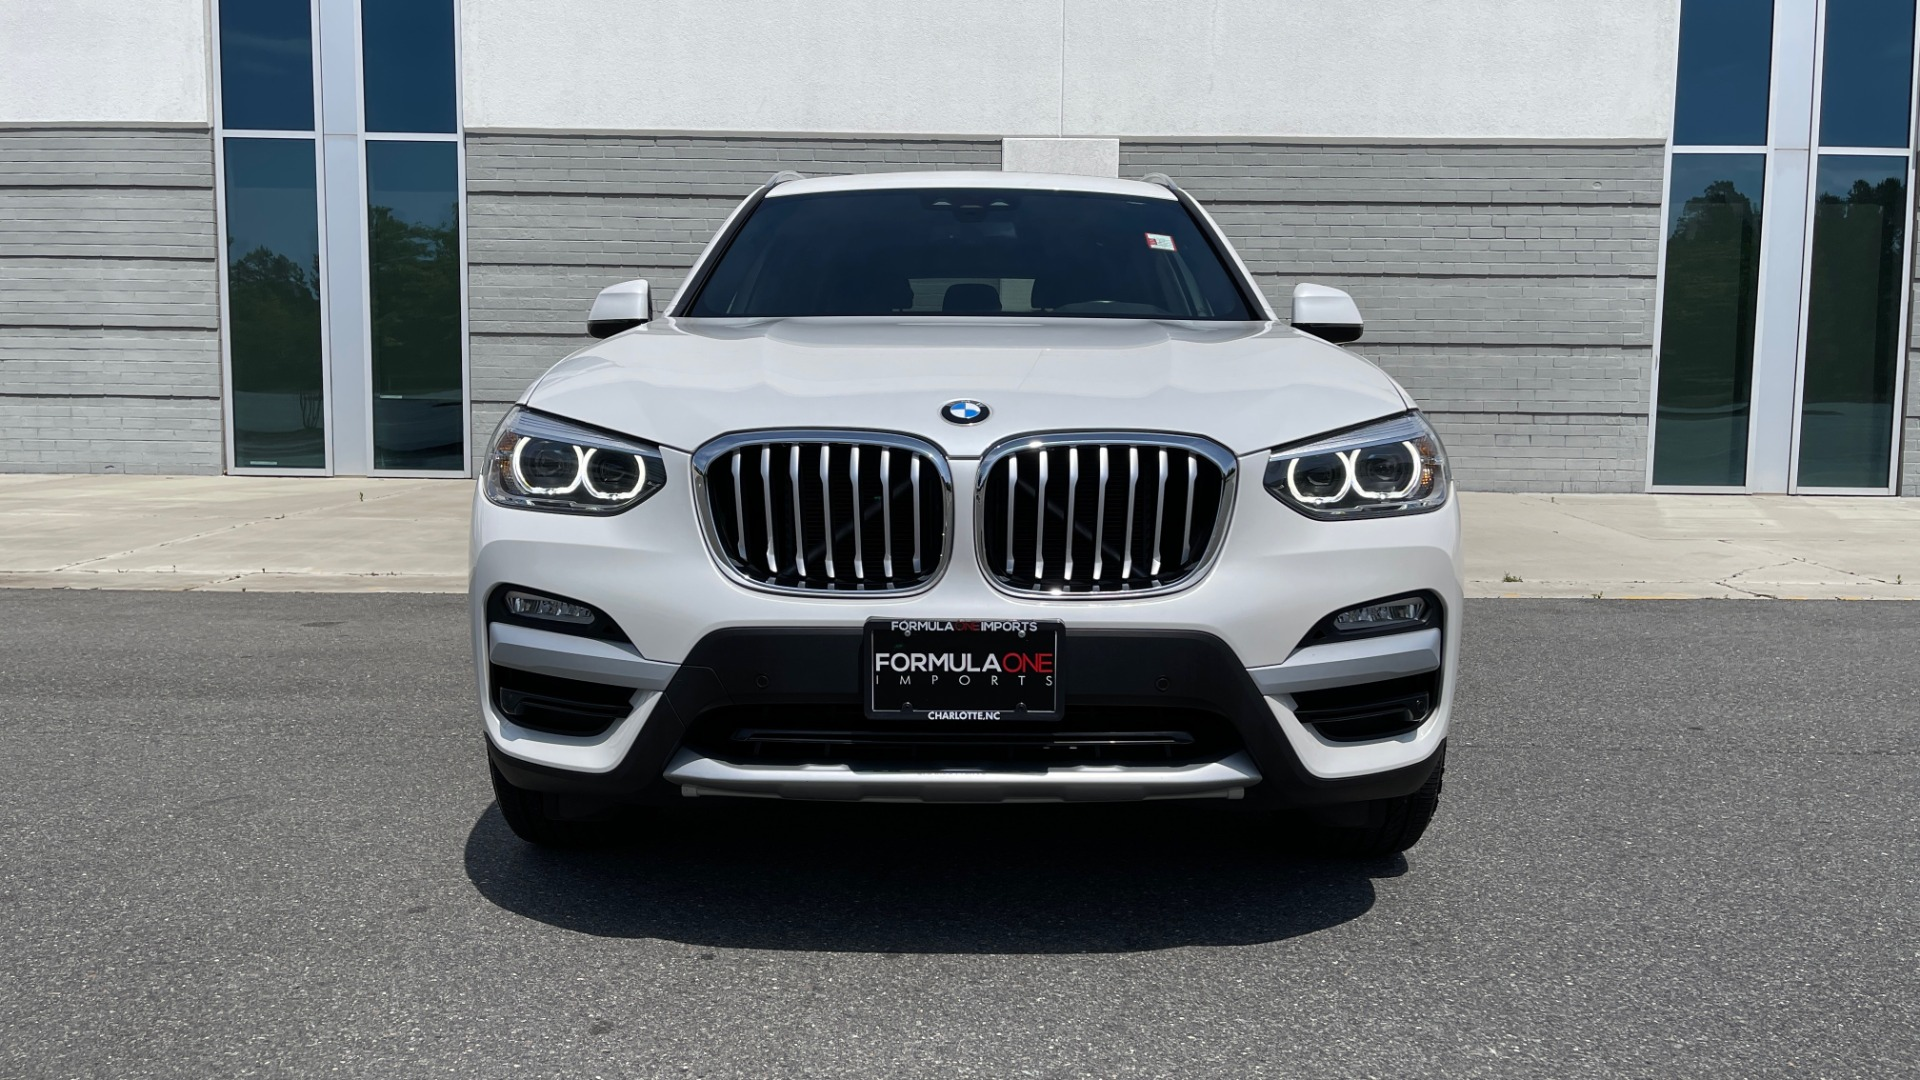 Used 2018 BMW X3 XDRIVE30I PREMIUM / NAV / DRVR ASST / CONV PKG / SUNROOF / REARVIEW for sale $32,695 at Formula Imports in Charlotte NC 28227 7